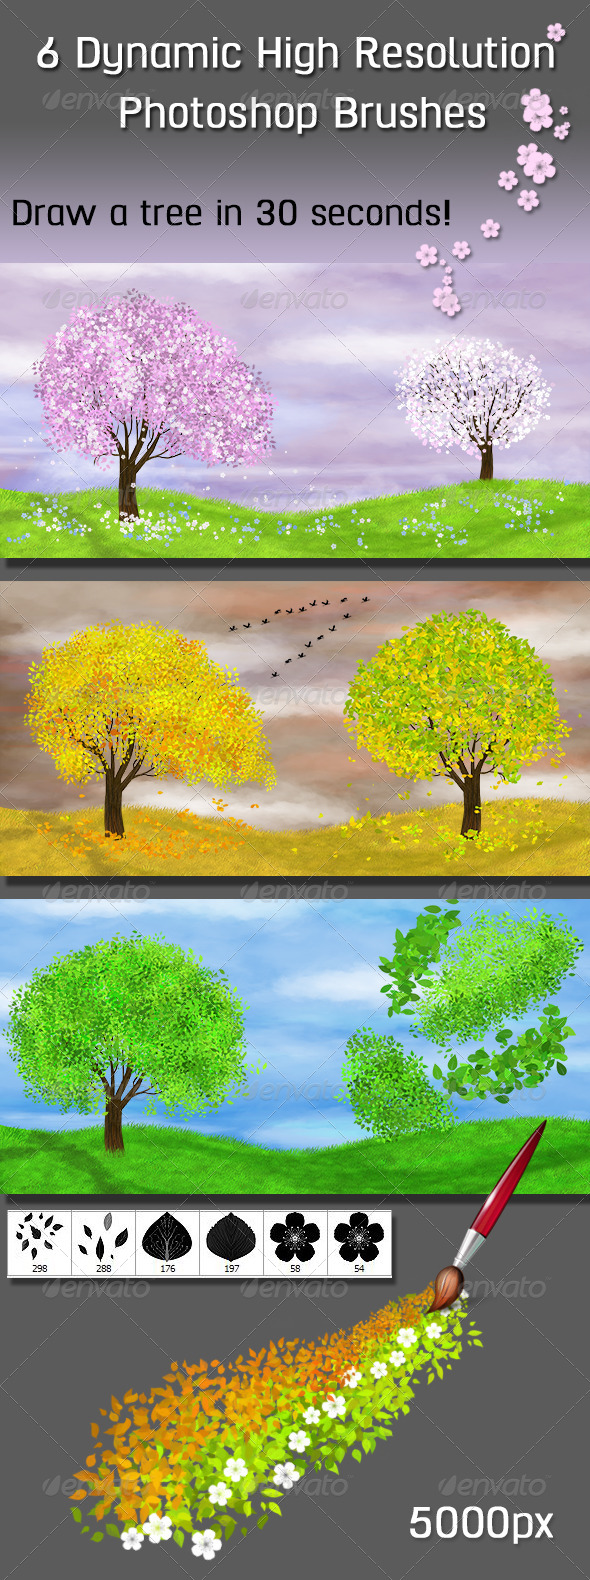 GraphicRiver 6 Dynamic High Resolution Photoshop Brushes Nature 7053796